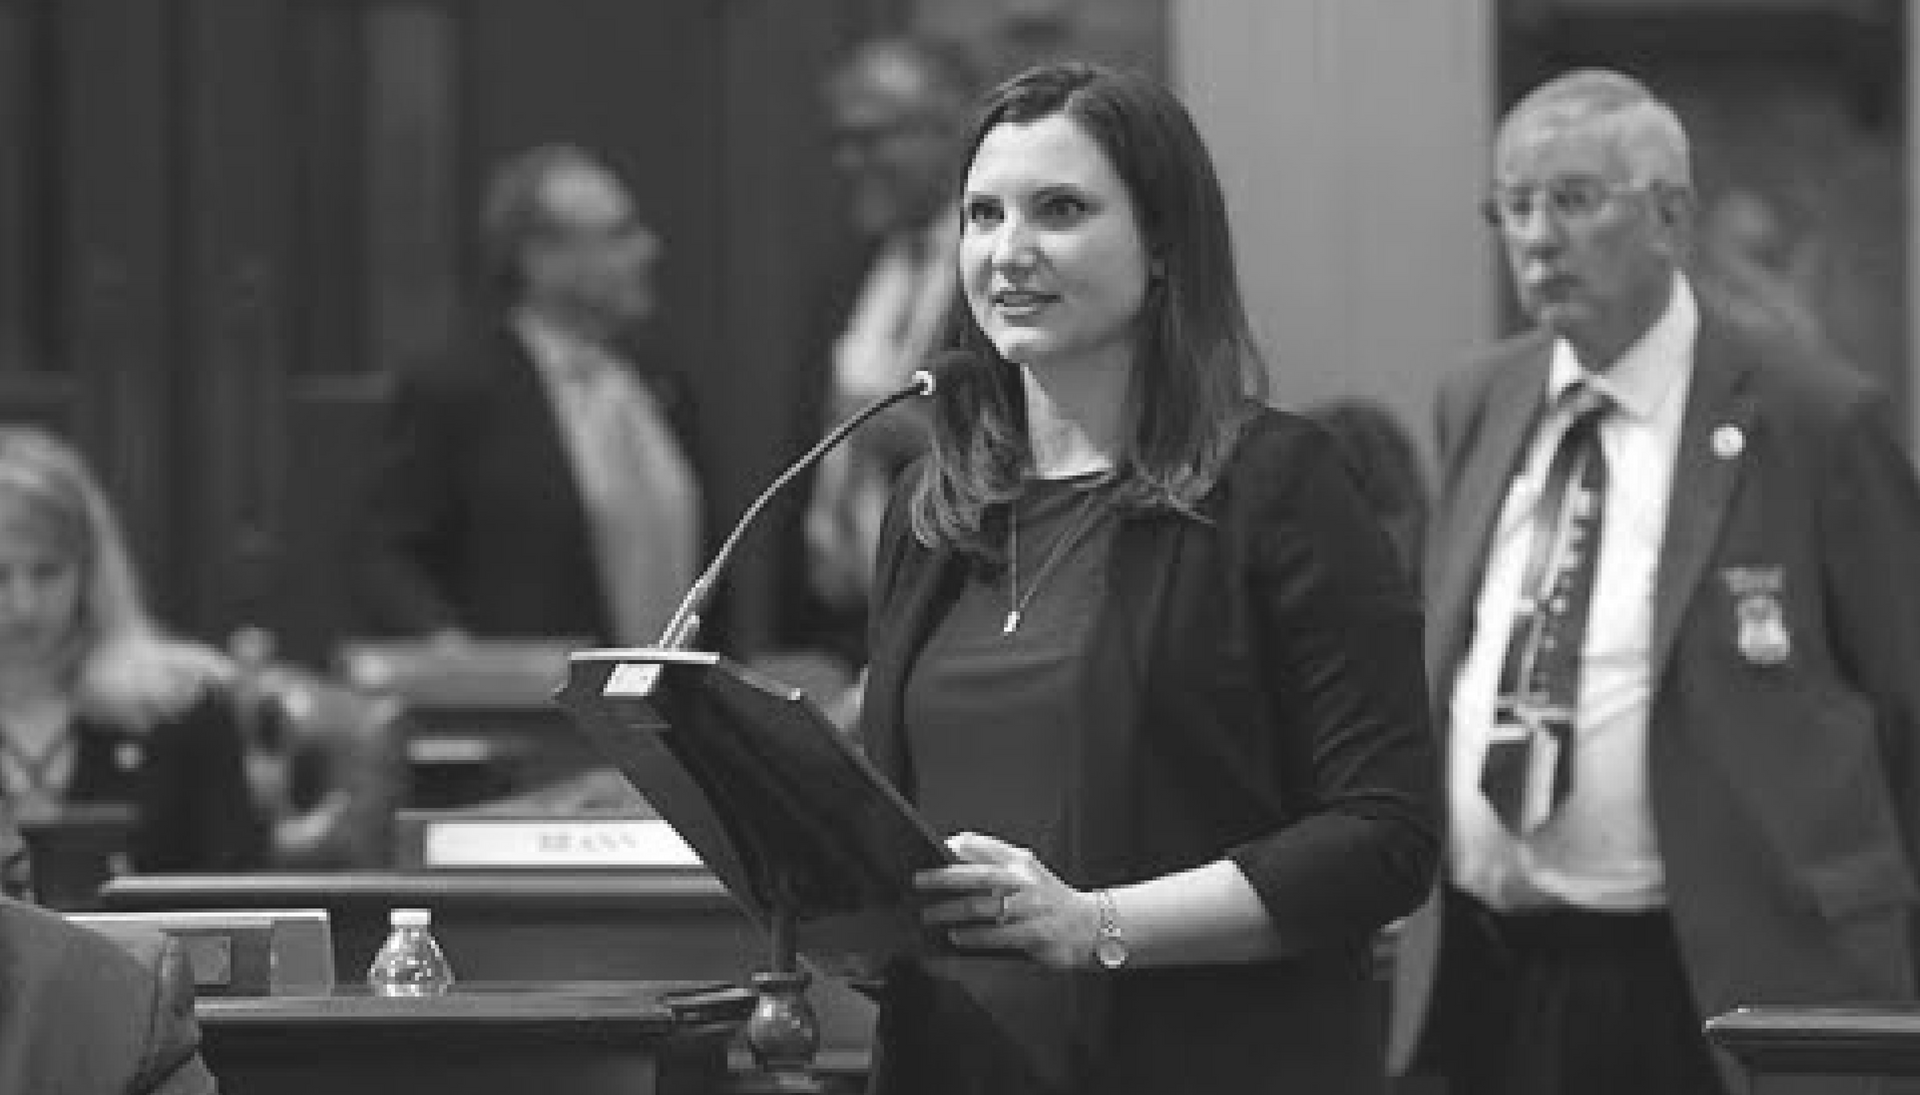 A photo of Kristy Pagan, who represents the 21st District in the Michigan House of Representatives.